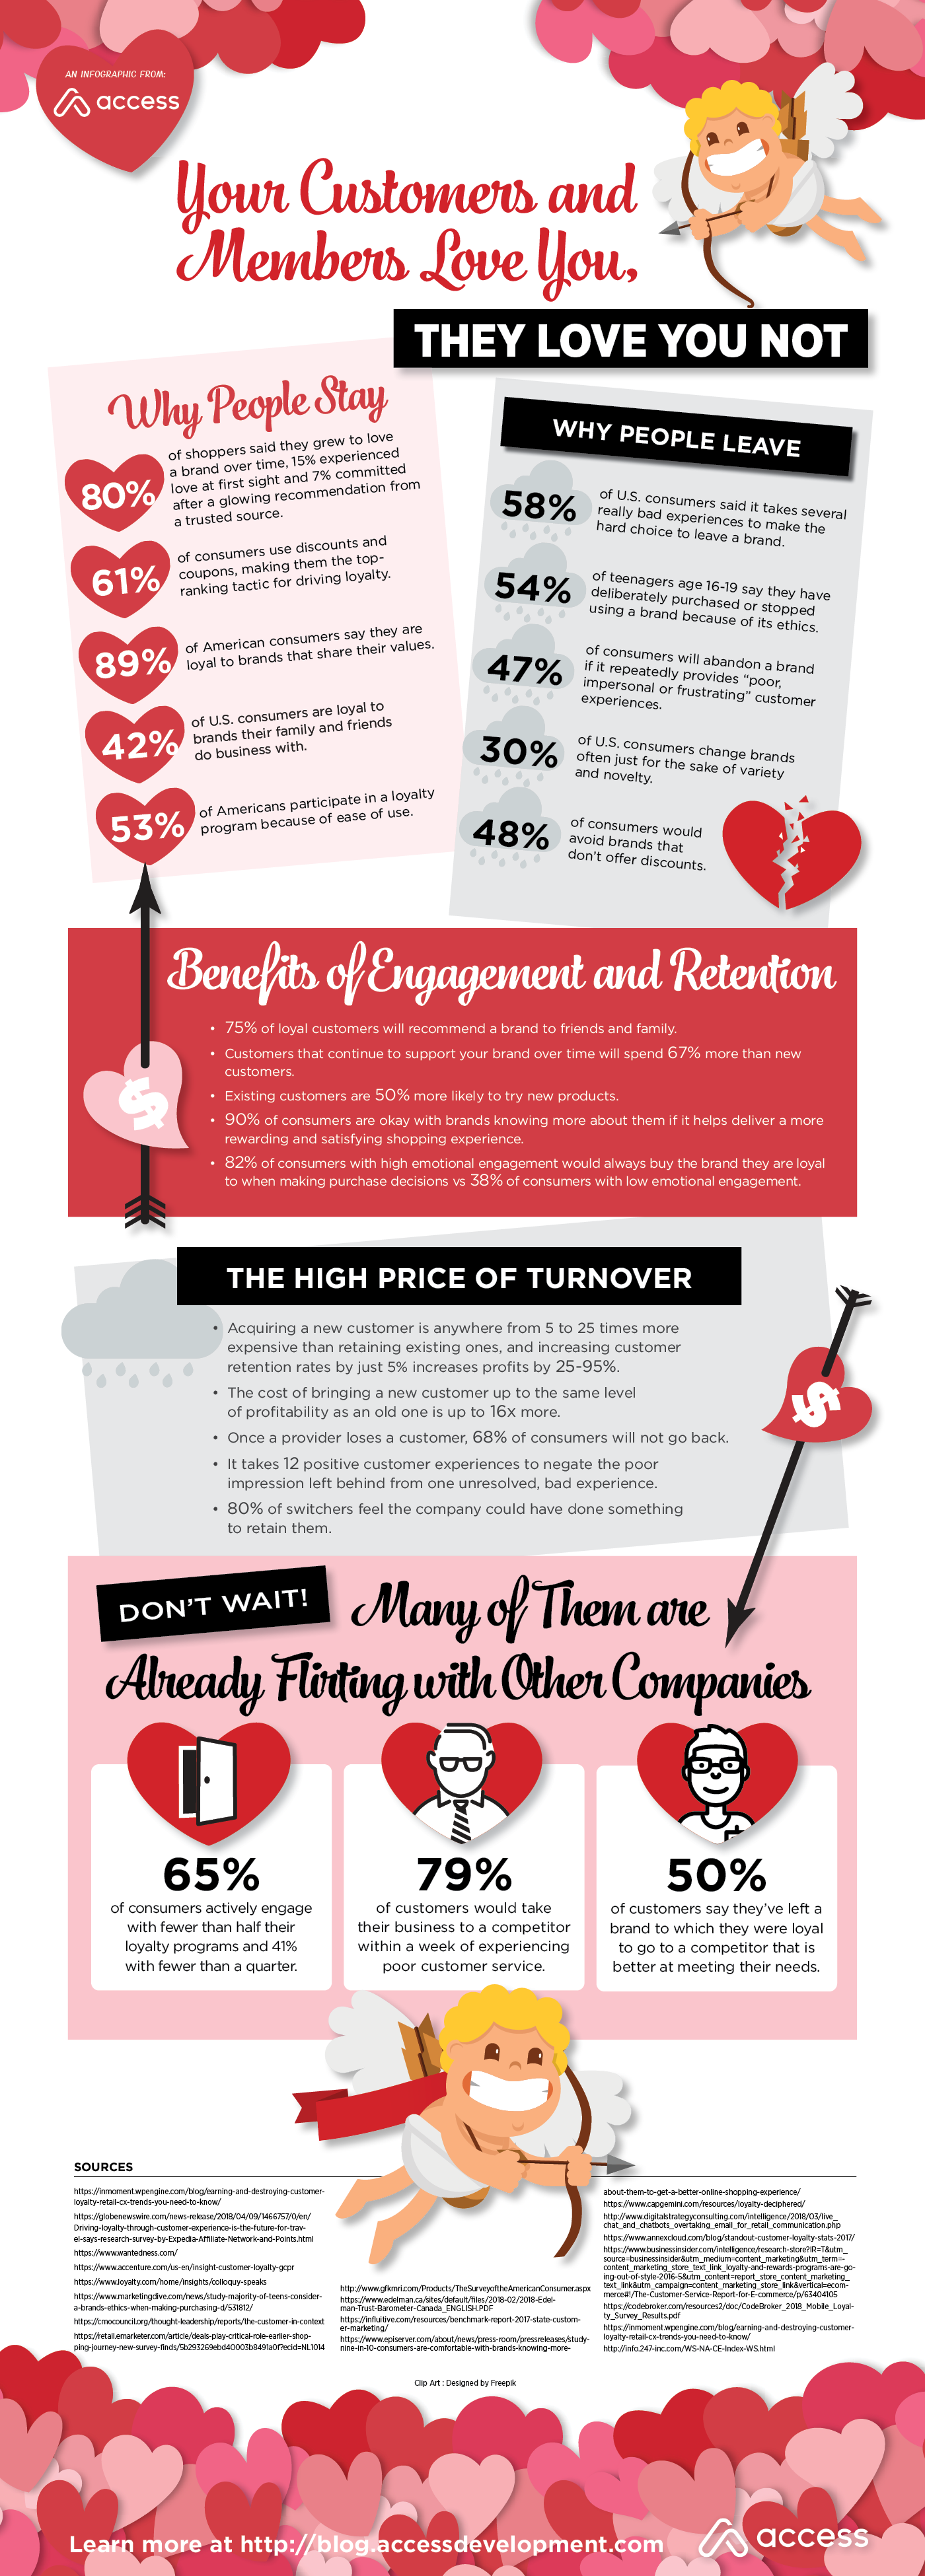 A Valentine's Day themed infographic featuring statistics about why some customers love you, while others love you not